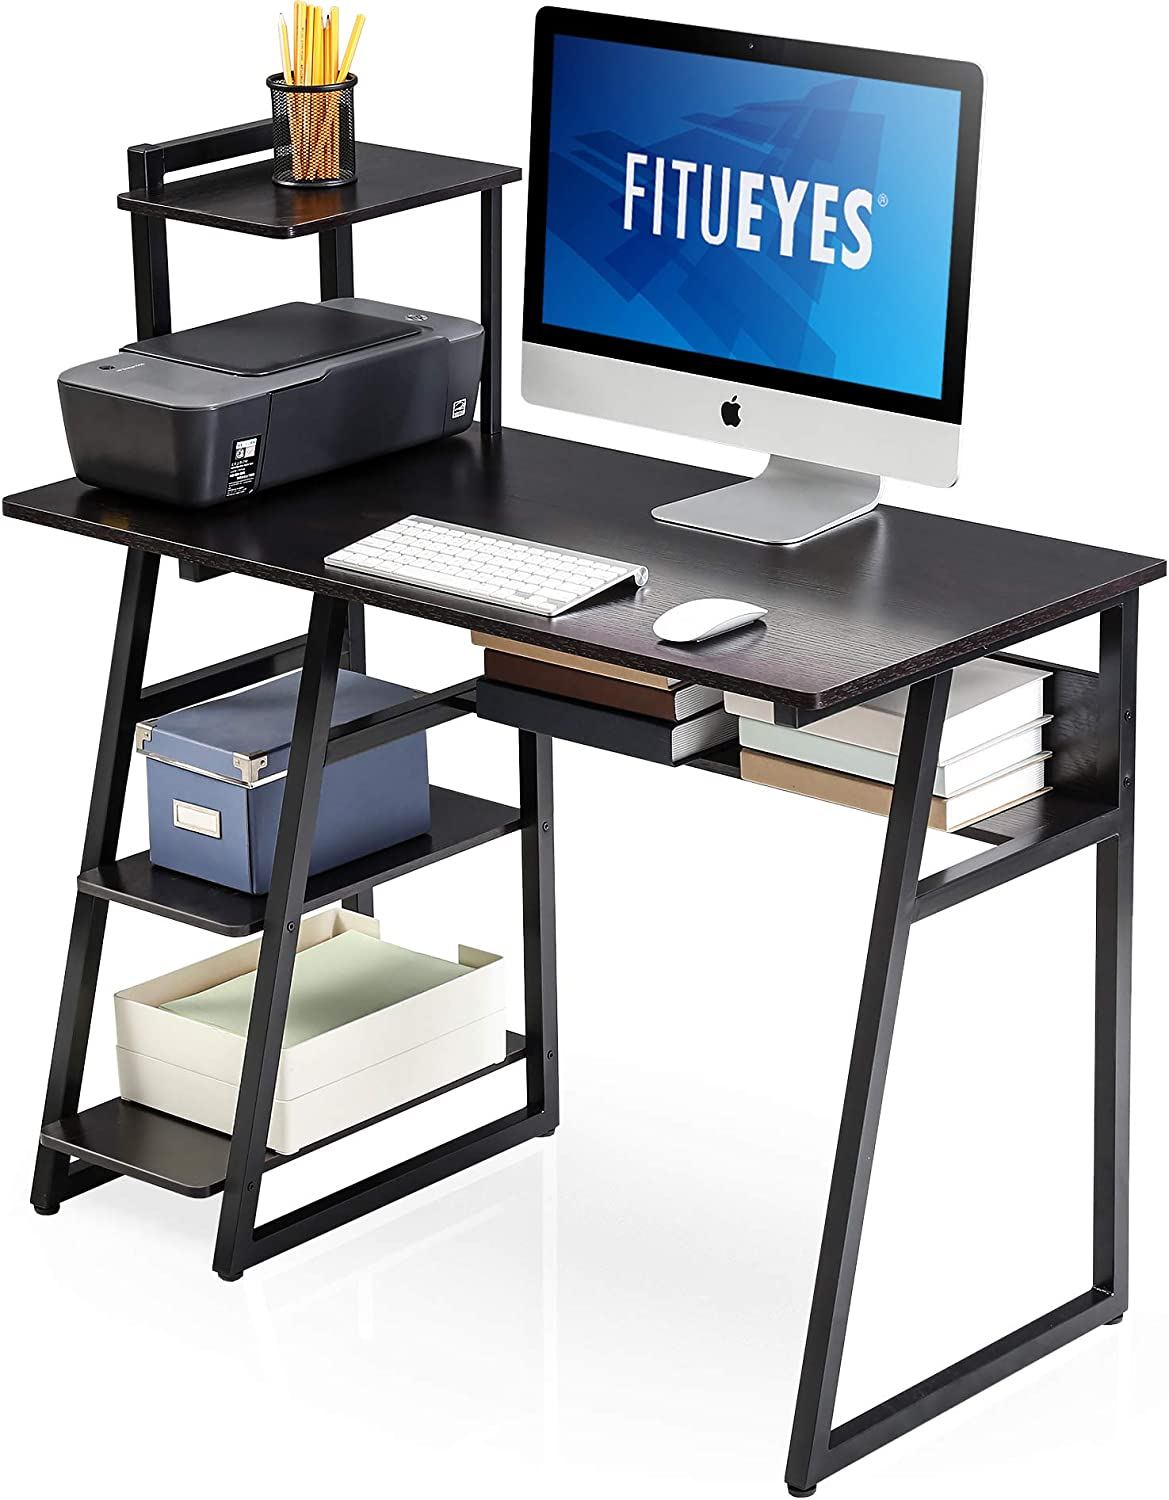 FITUEYES Computer Desk with Storage Shelves,Writing Table with Bookshelf,Workstation Home Office Desk